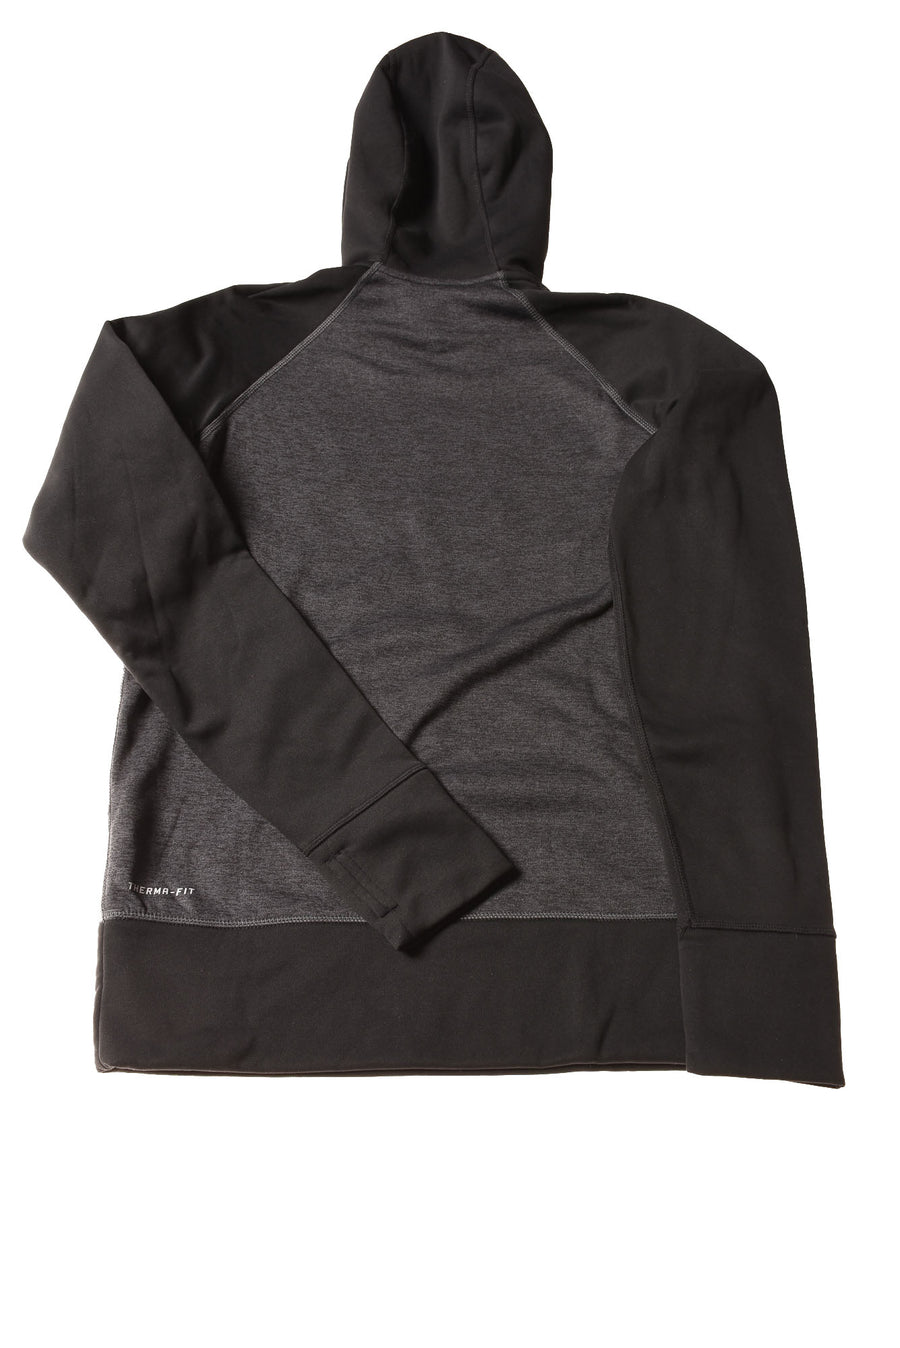 NEW Nike Women's Hoodie Medium Gray & Black